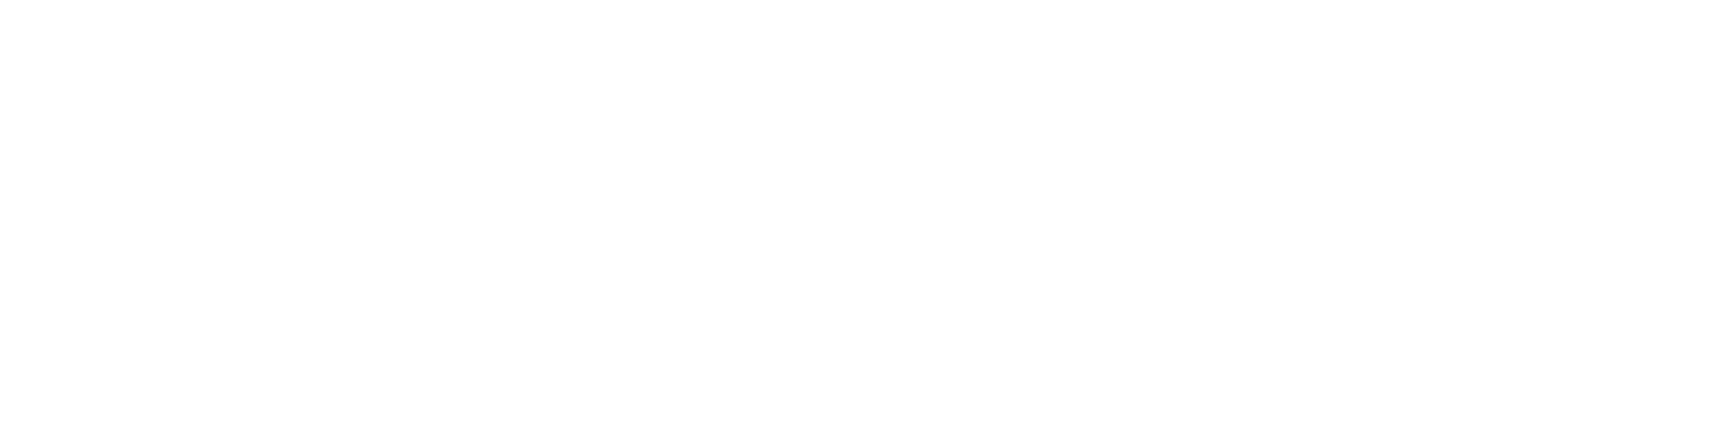 Crosswater at Nocatee Logo_white.png